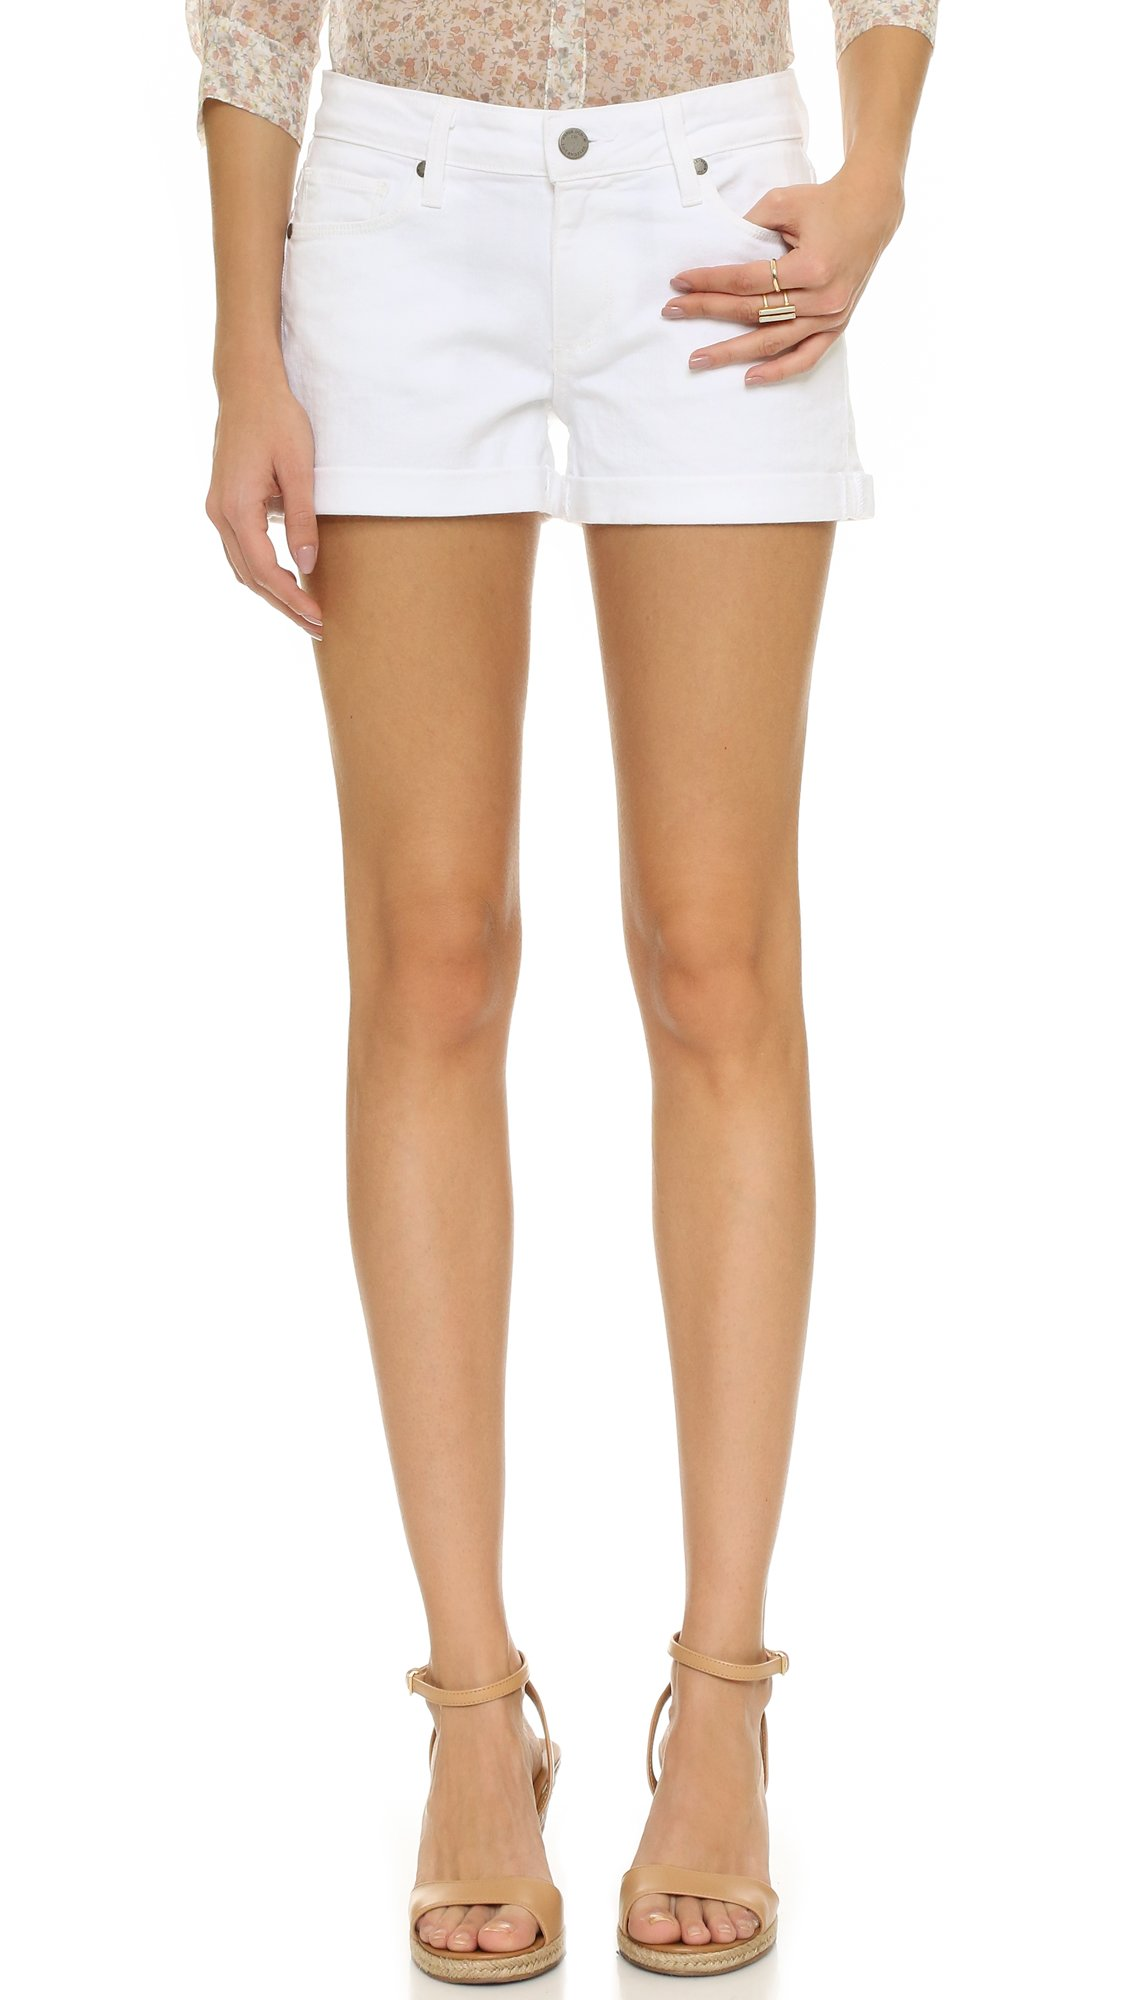 Paige Women's Jimmy Jimmy Short In Optic White, Optic White, 28